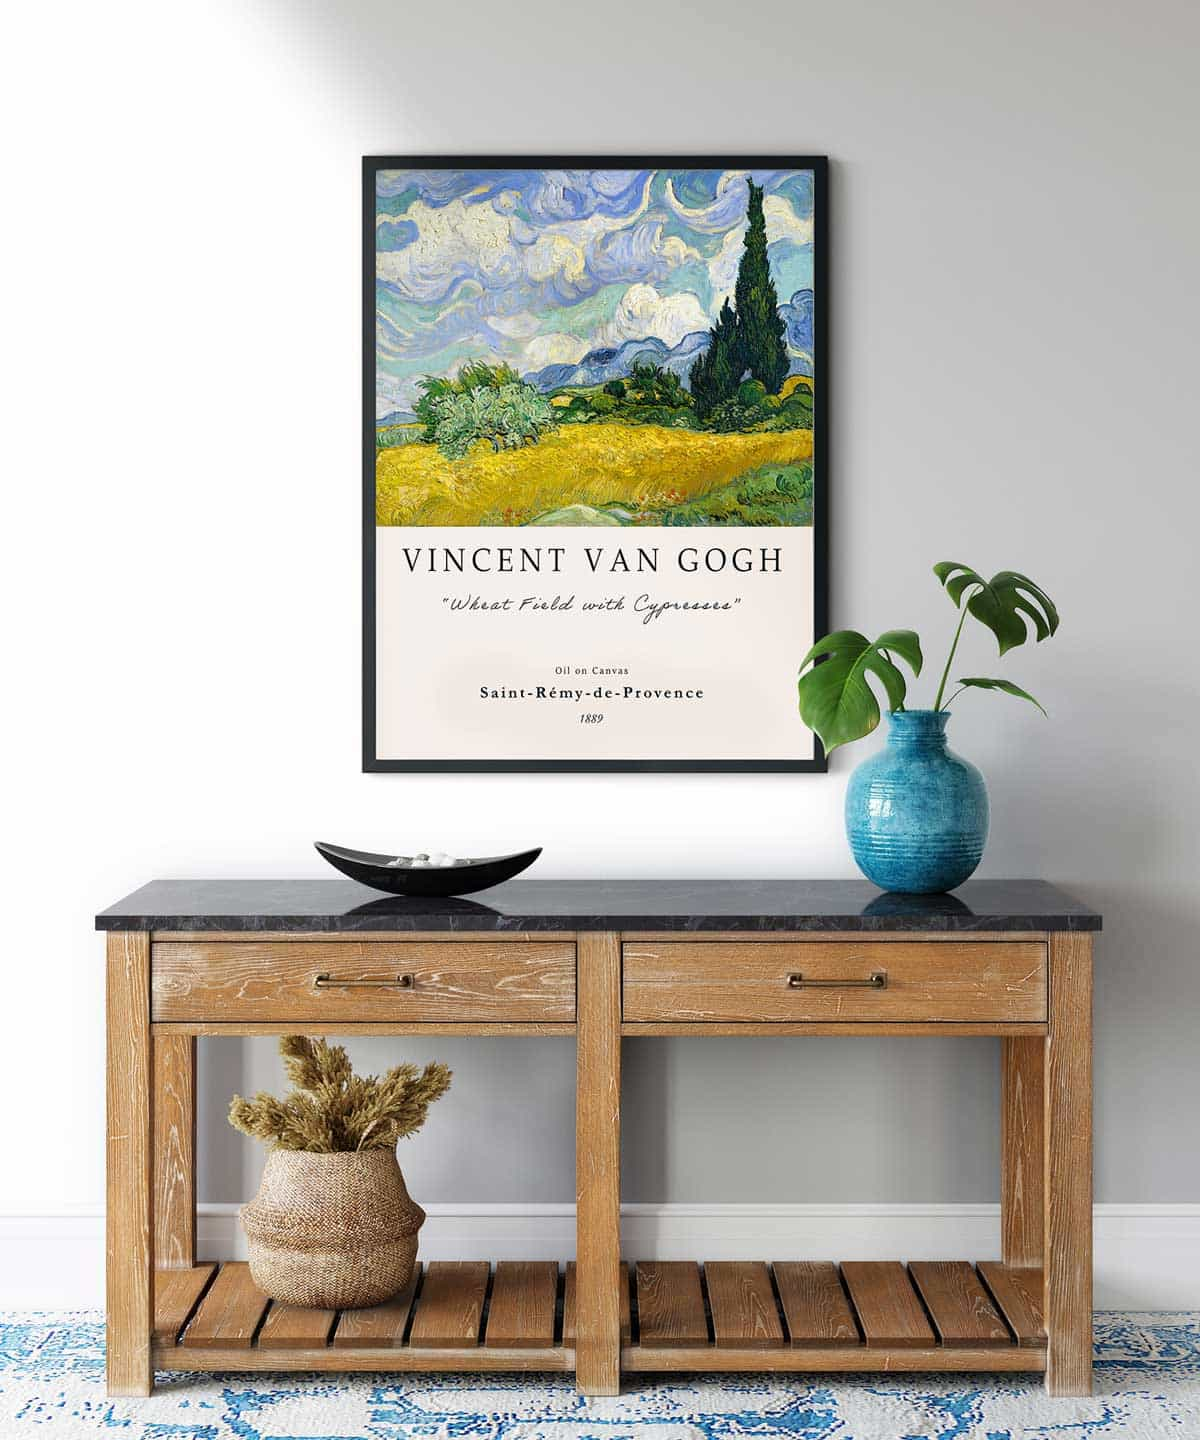 Van-Gogh-Wheat-Field-with-Cypresses-Poster-Black-Framed-on-Wall-Duwart